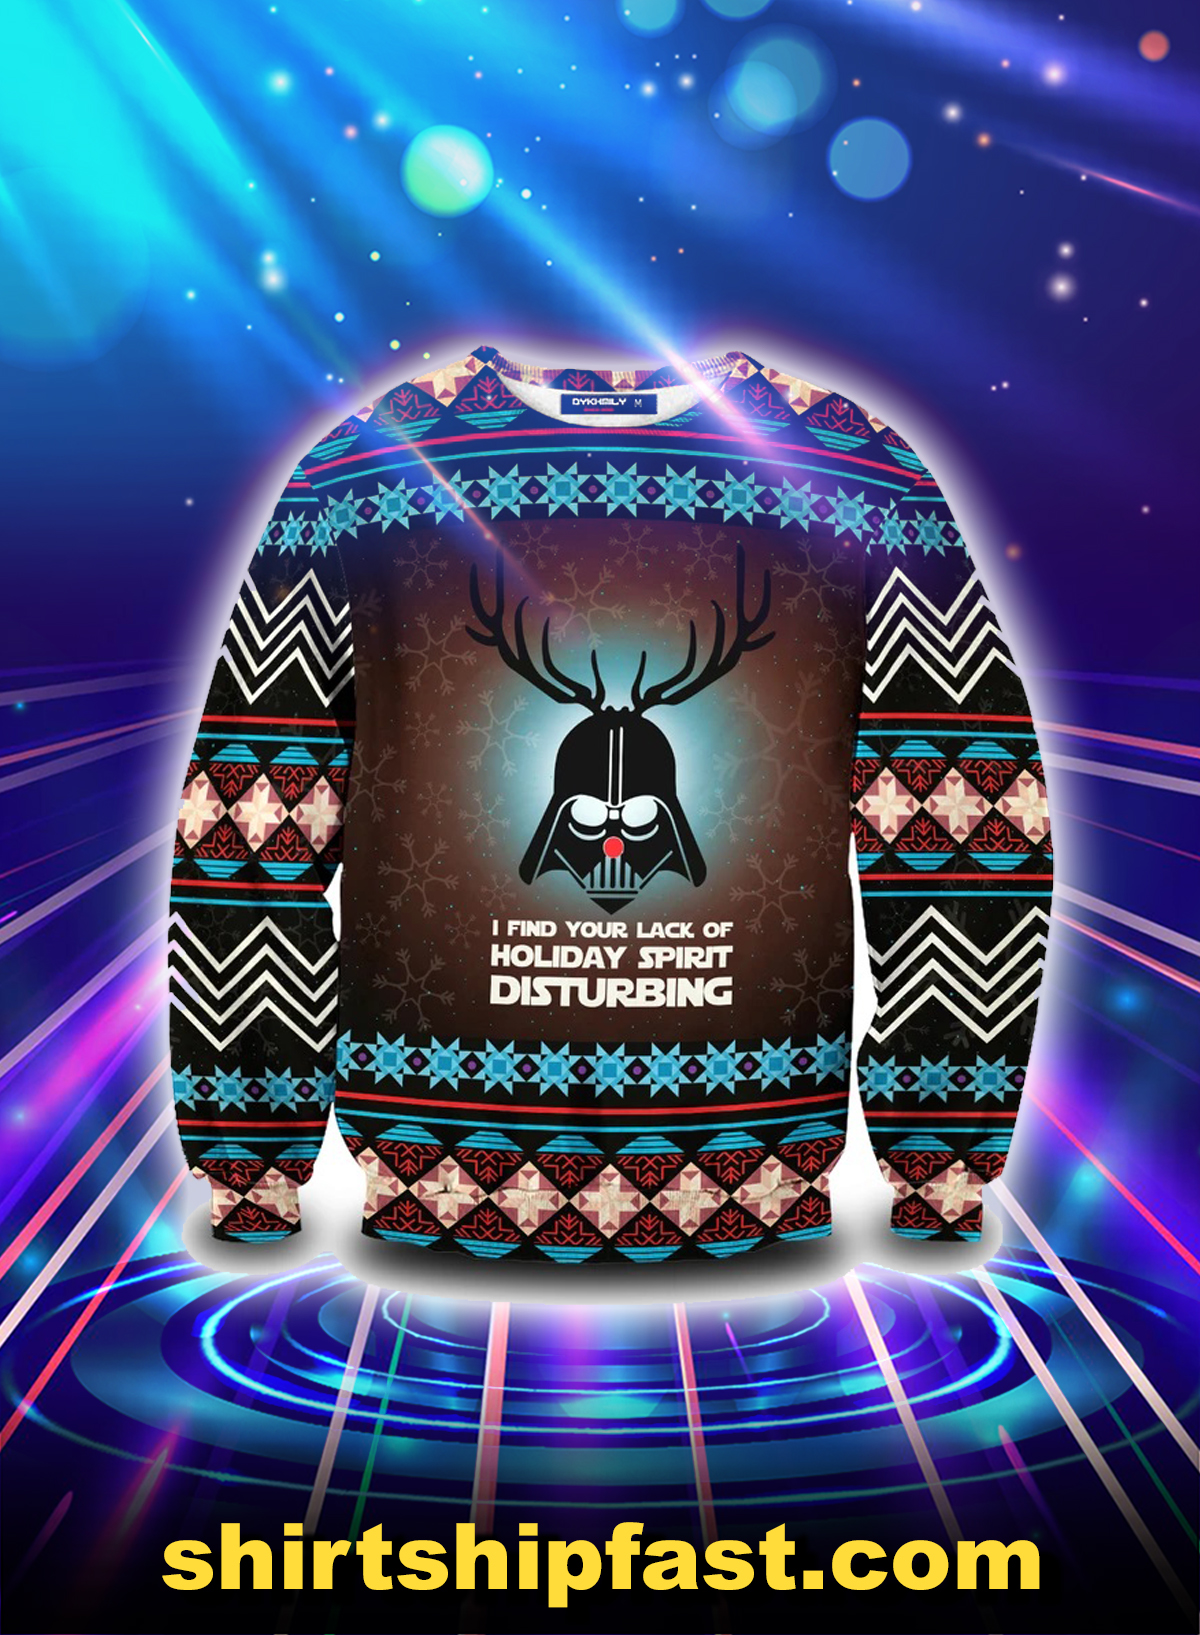 Darth vader deer I find your lack of holiday spirit disturbing ugly christmas sweater - Picture 1